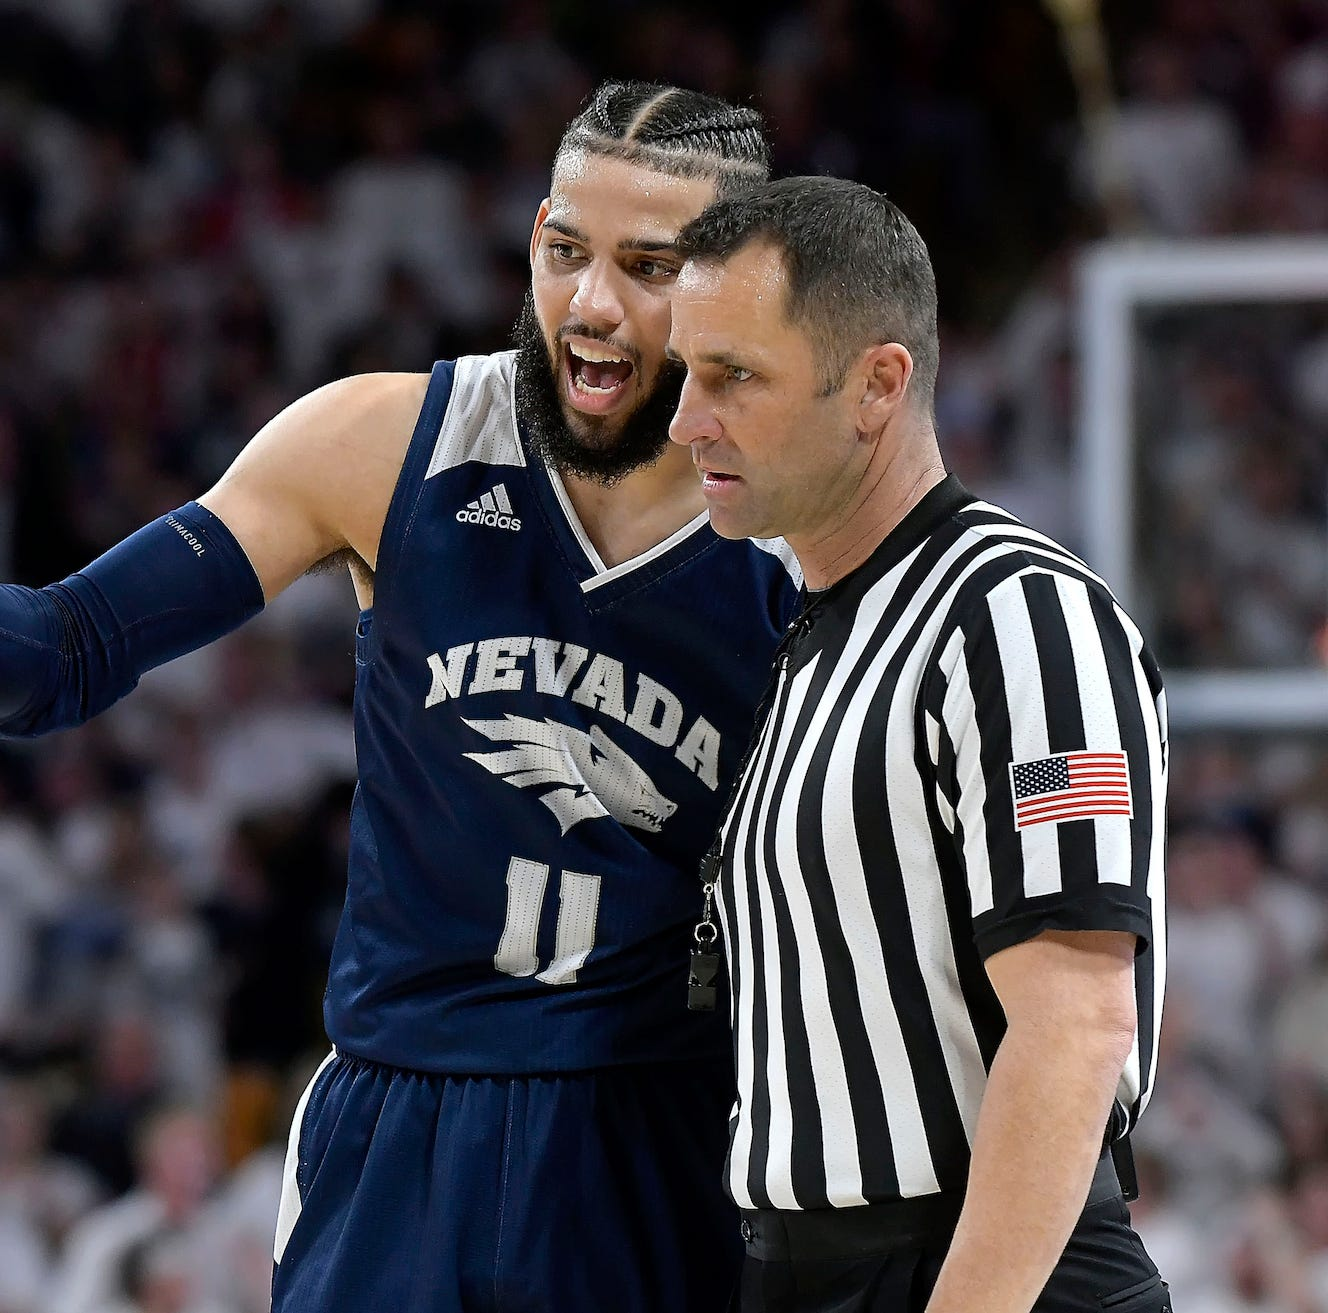 Nevada basketball falls to season-low 17th in AP Top 25 poll